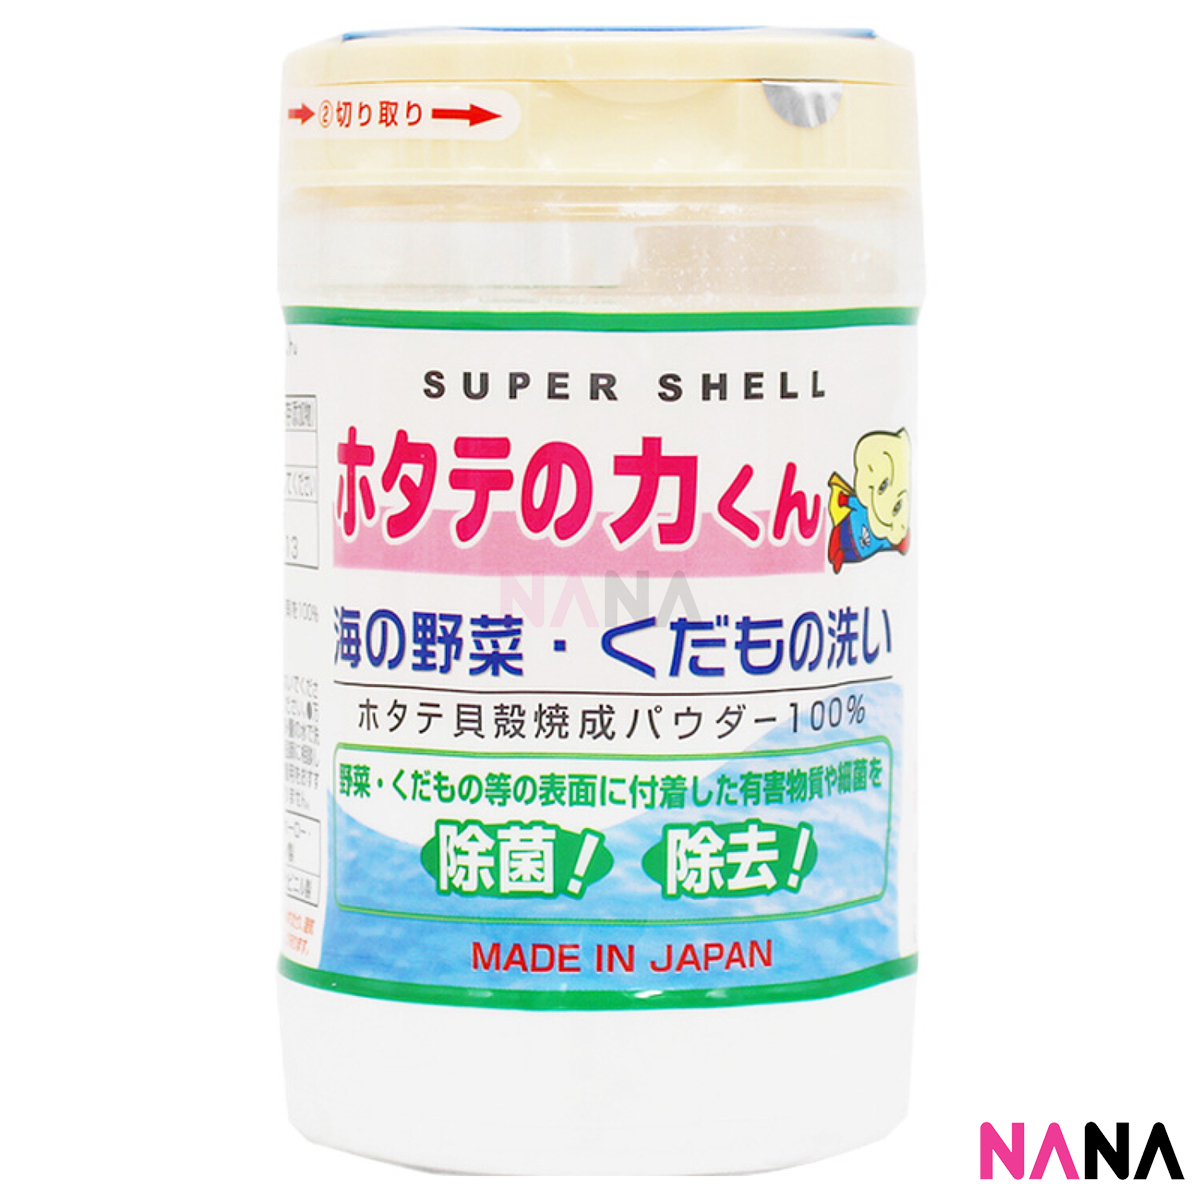 Natural Scallop Shell Powder for Washing Fruits and Vegetables 90g